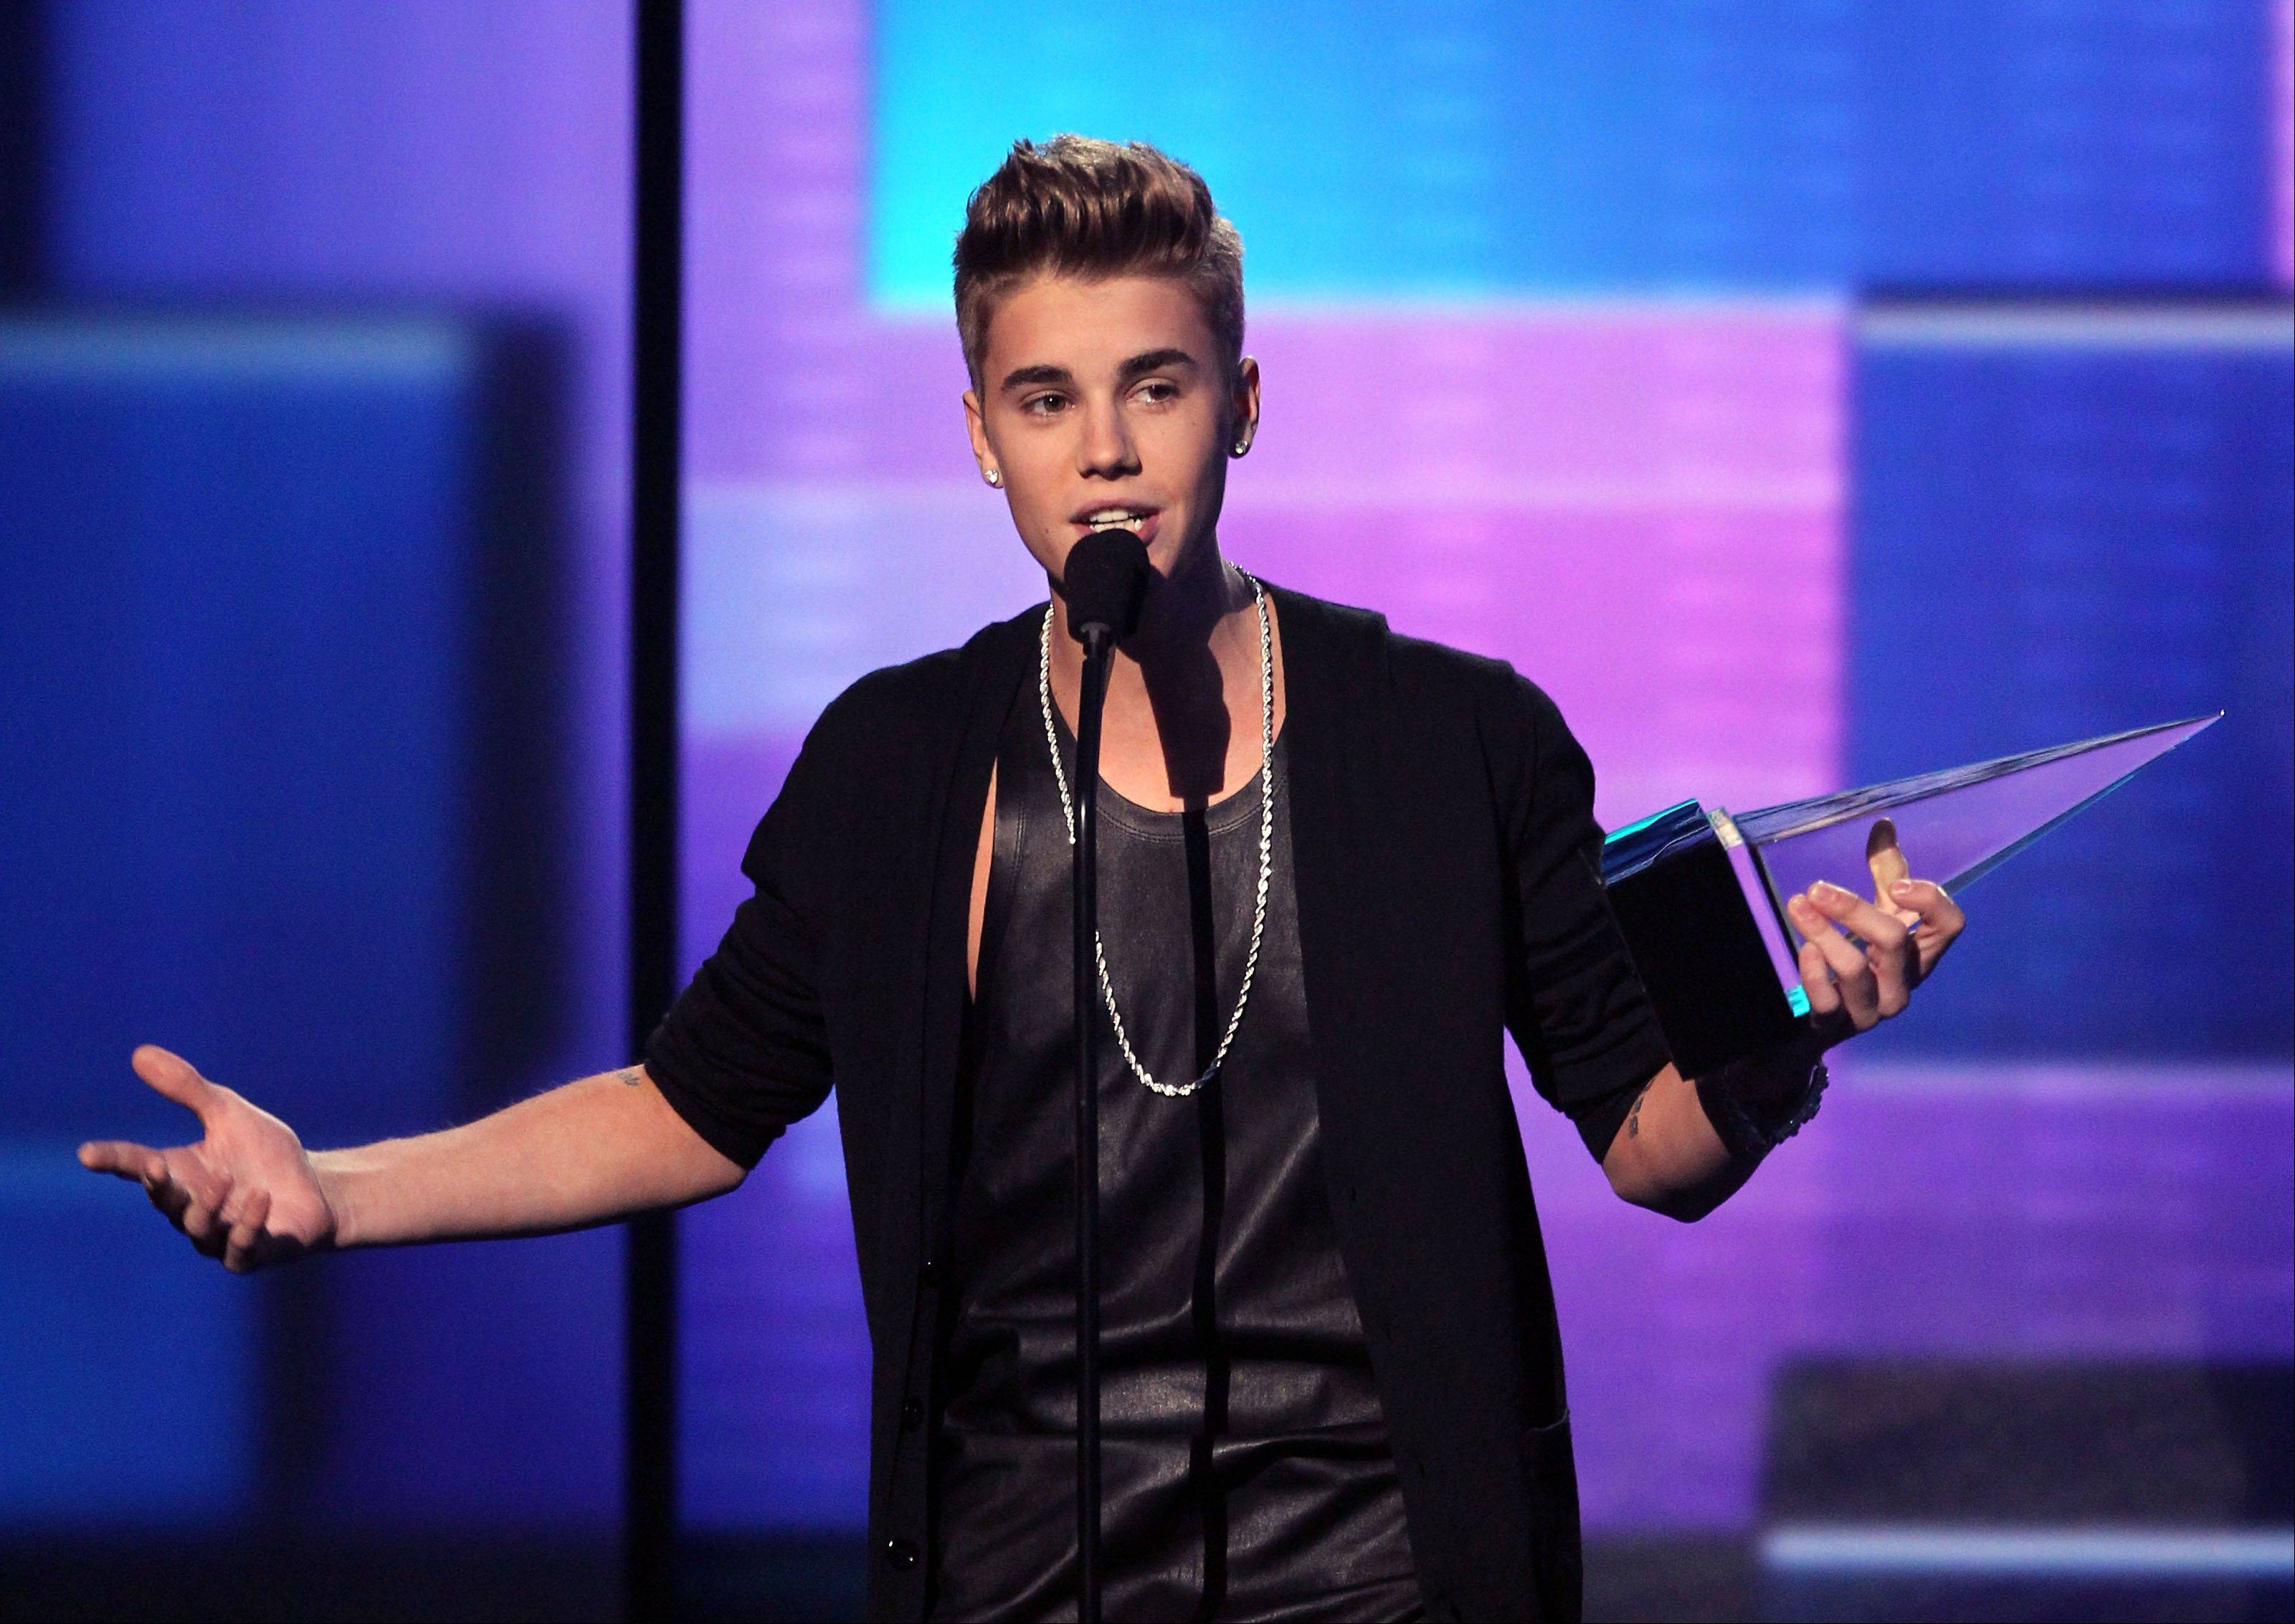 Bieber, Minaj and Swift pick up awards at AMAs